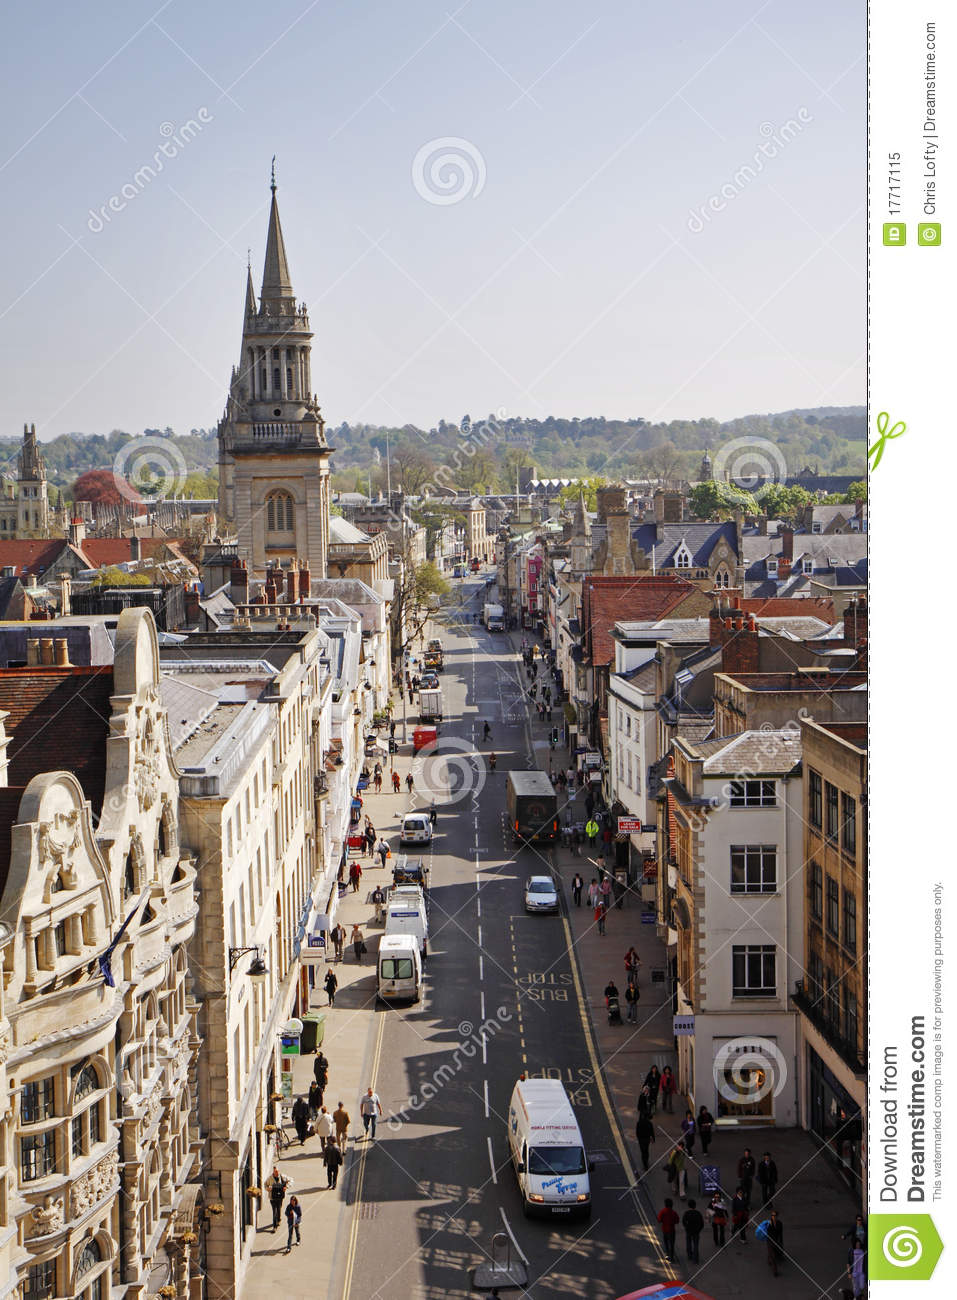 England City Images